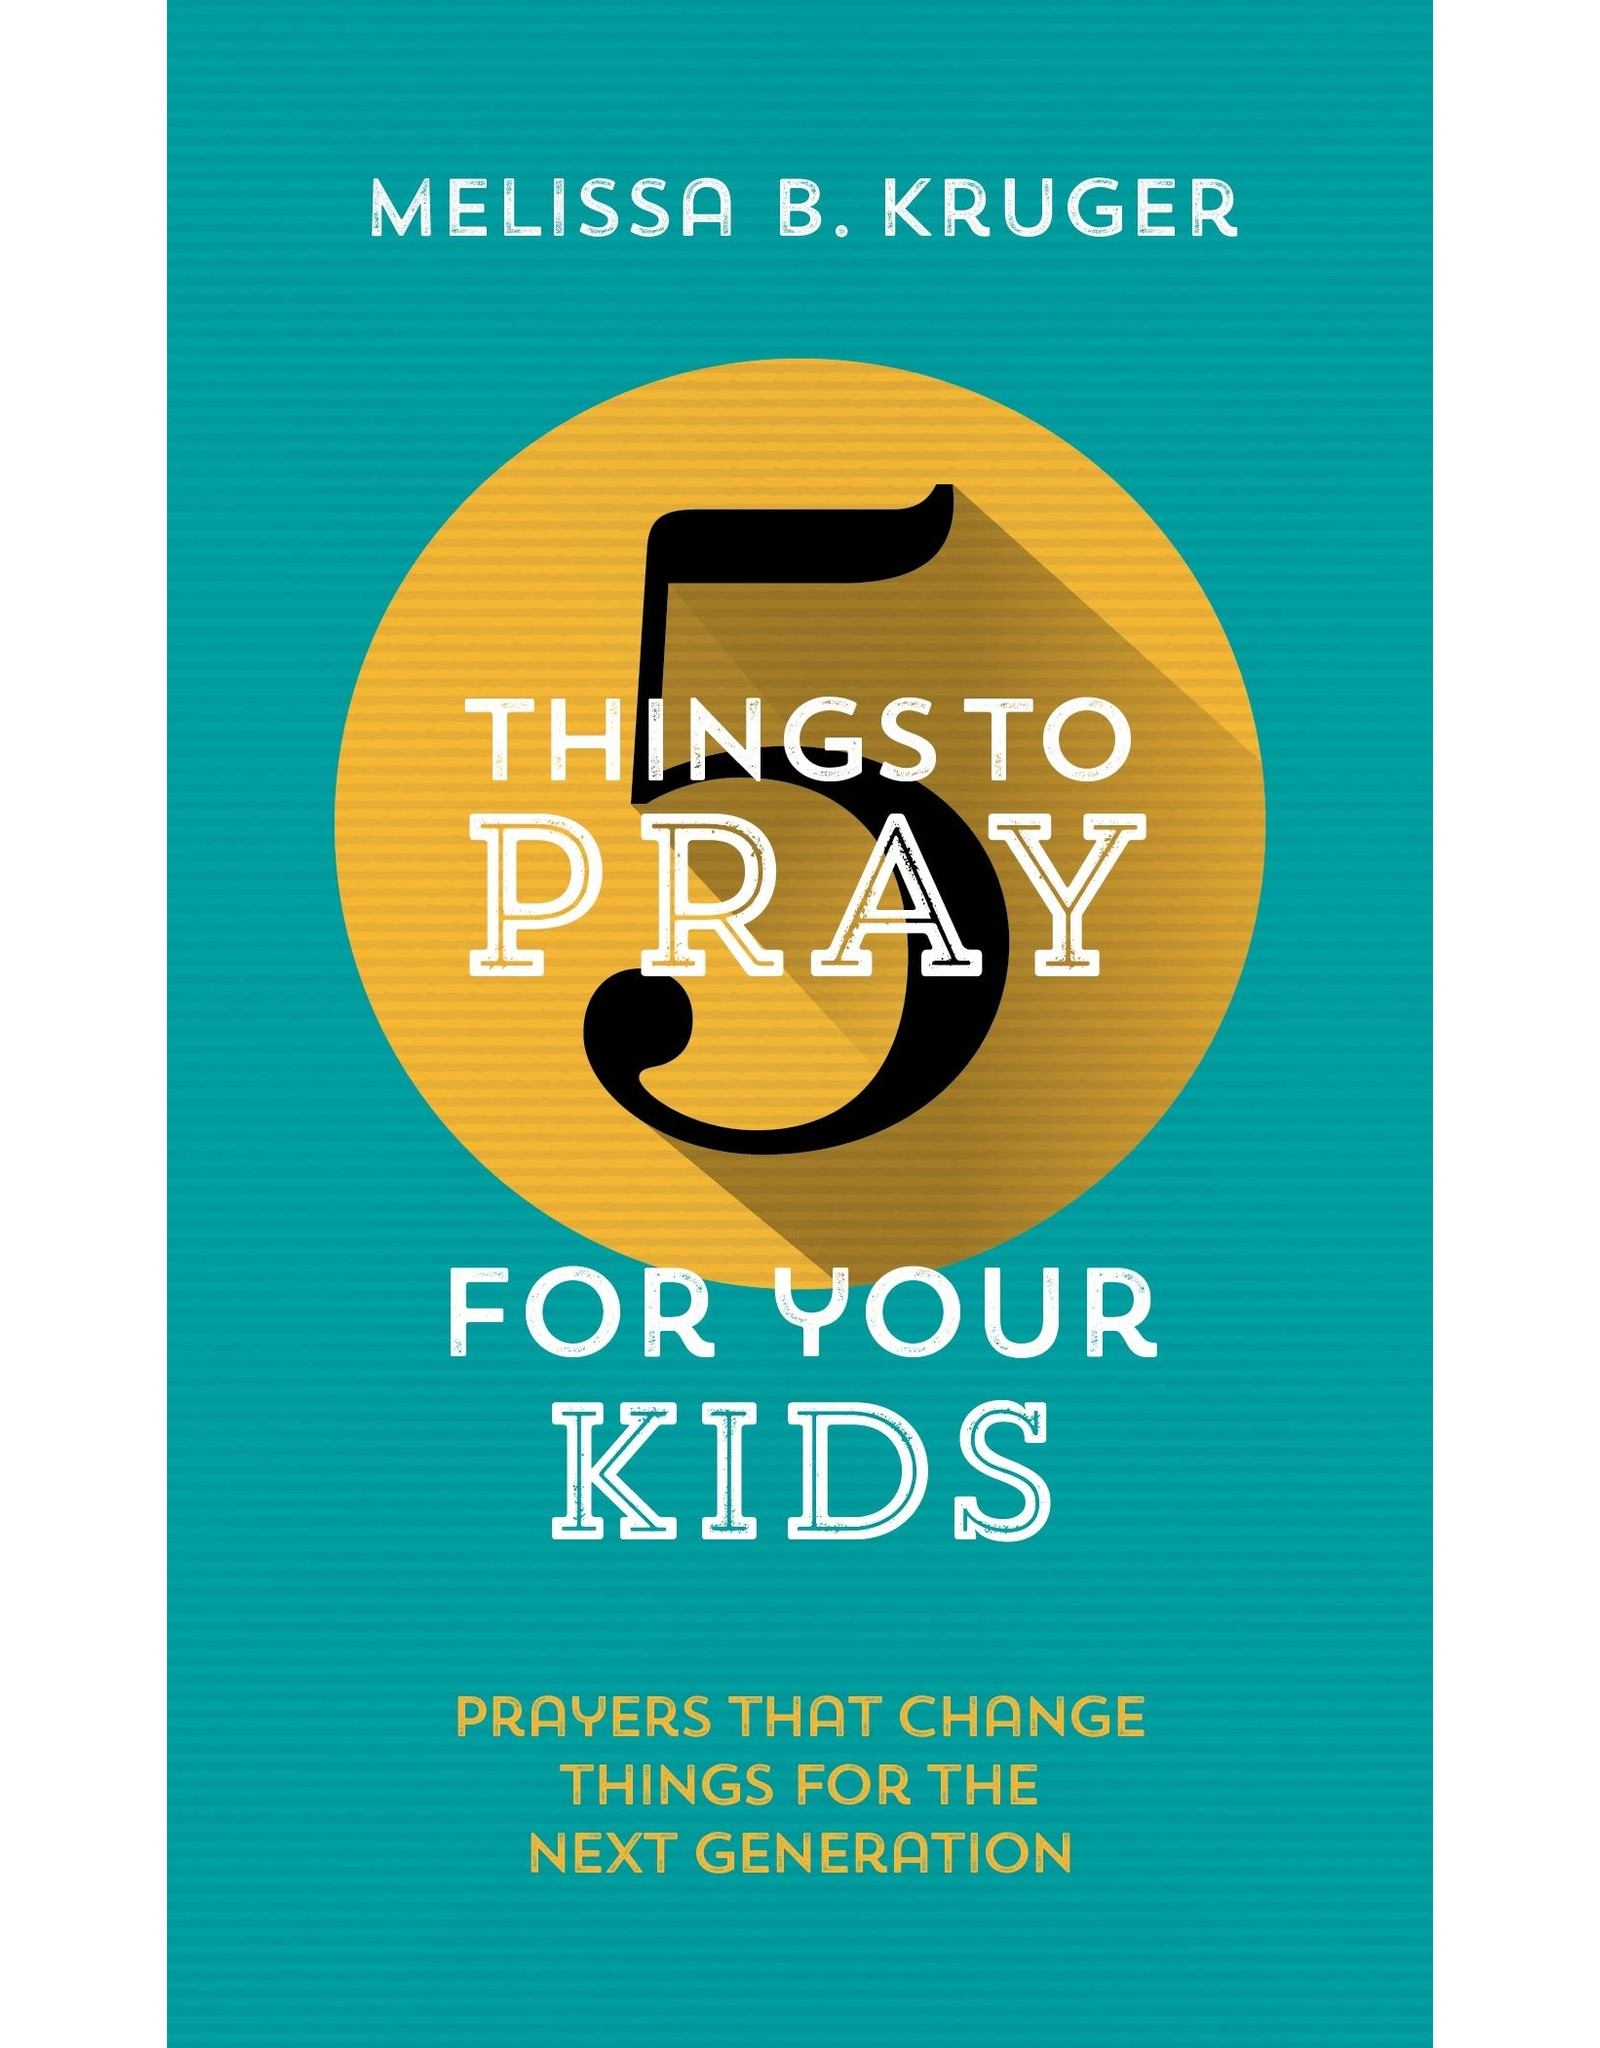 The Good Book Company 5 Things to Pray for your Kids: Prayers that Change Things for the Next Generation